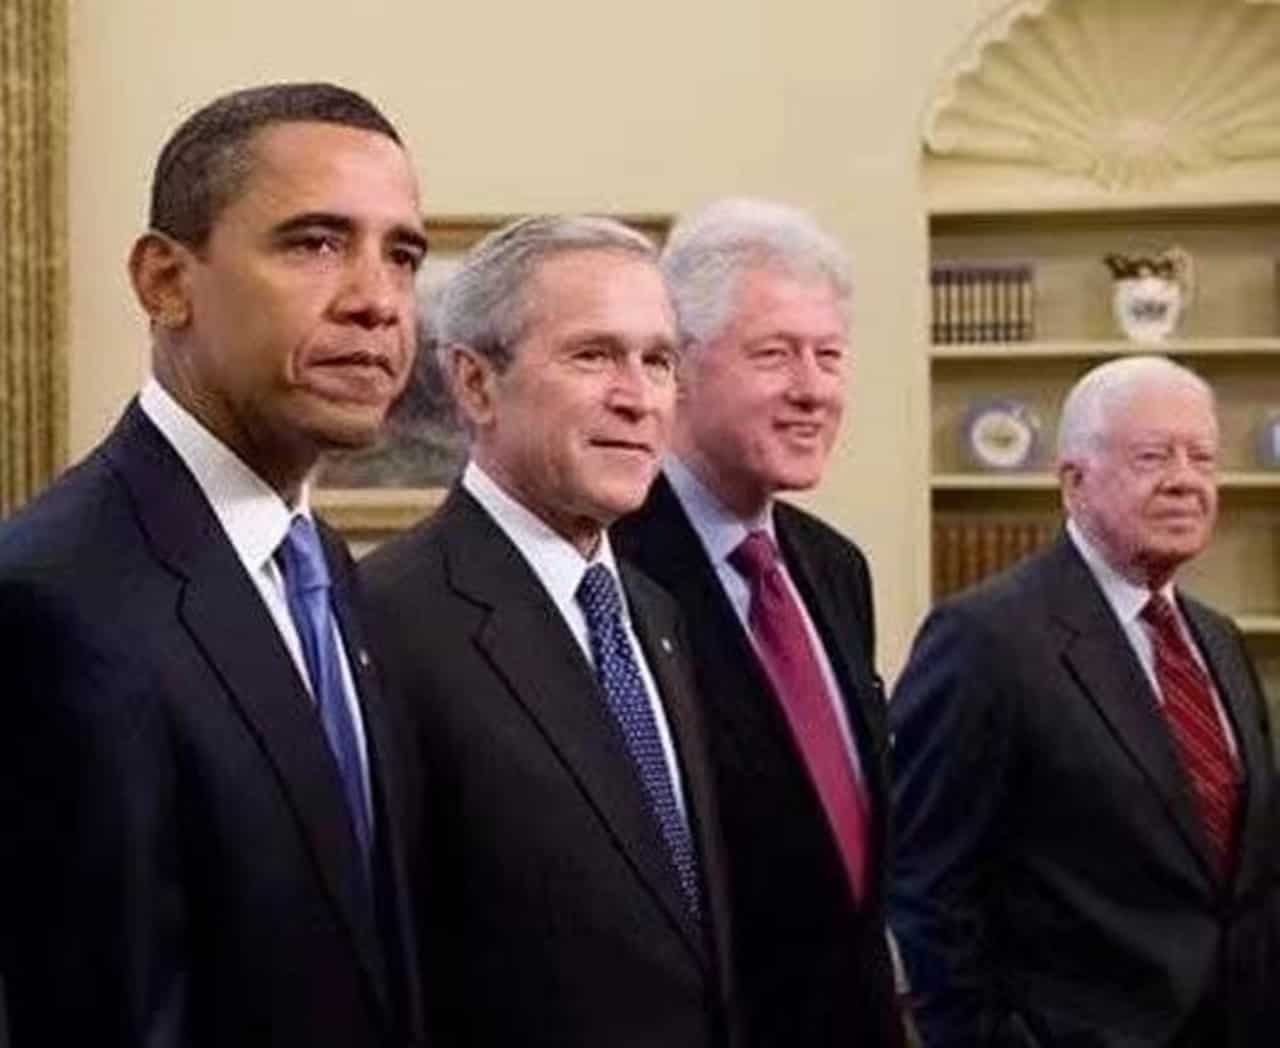 Four Former US Presidents Promote COVID-19 Vaccination Campaign